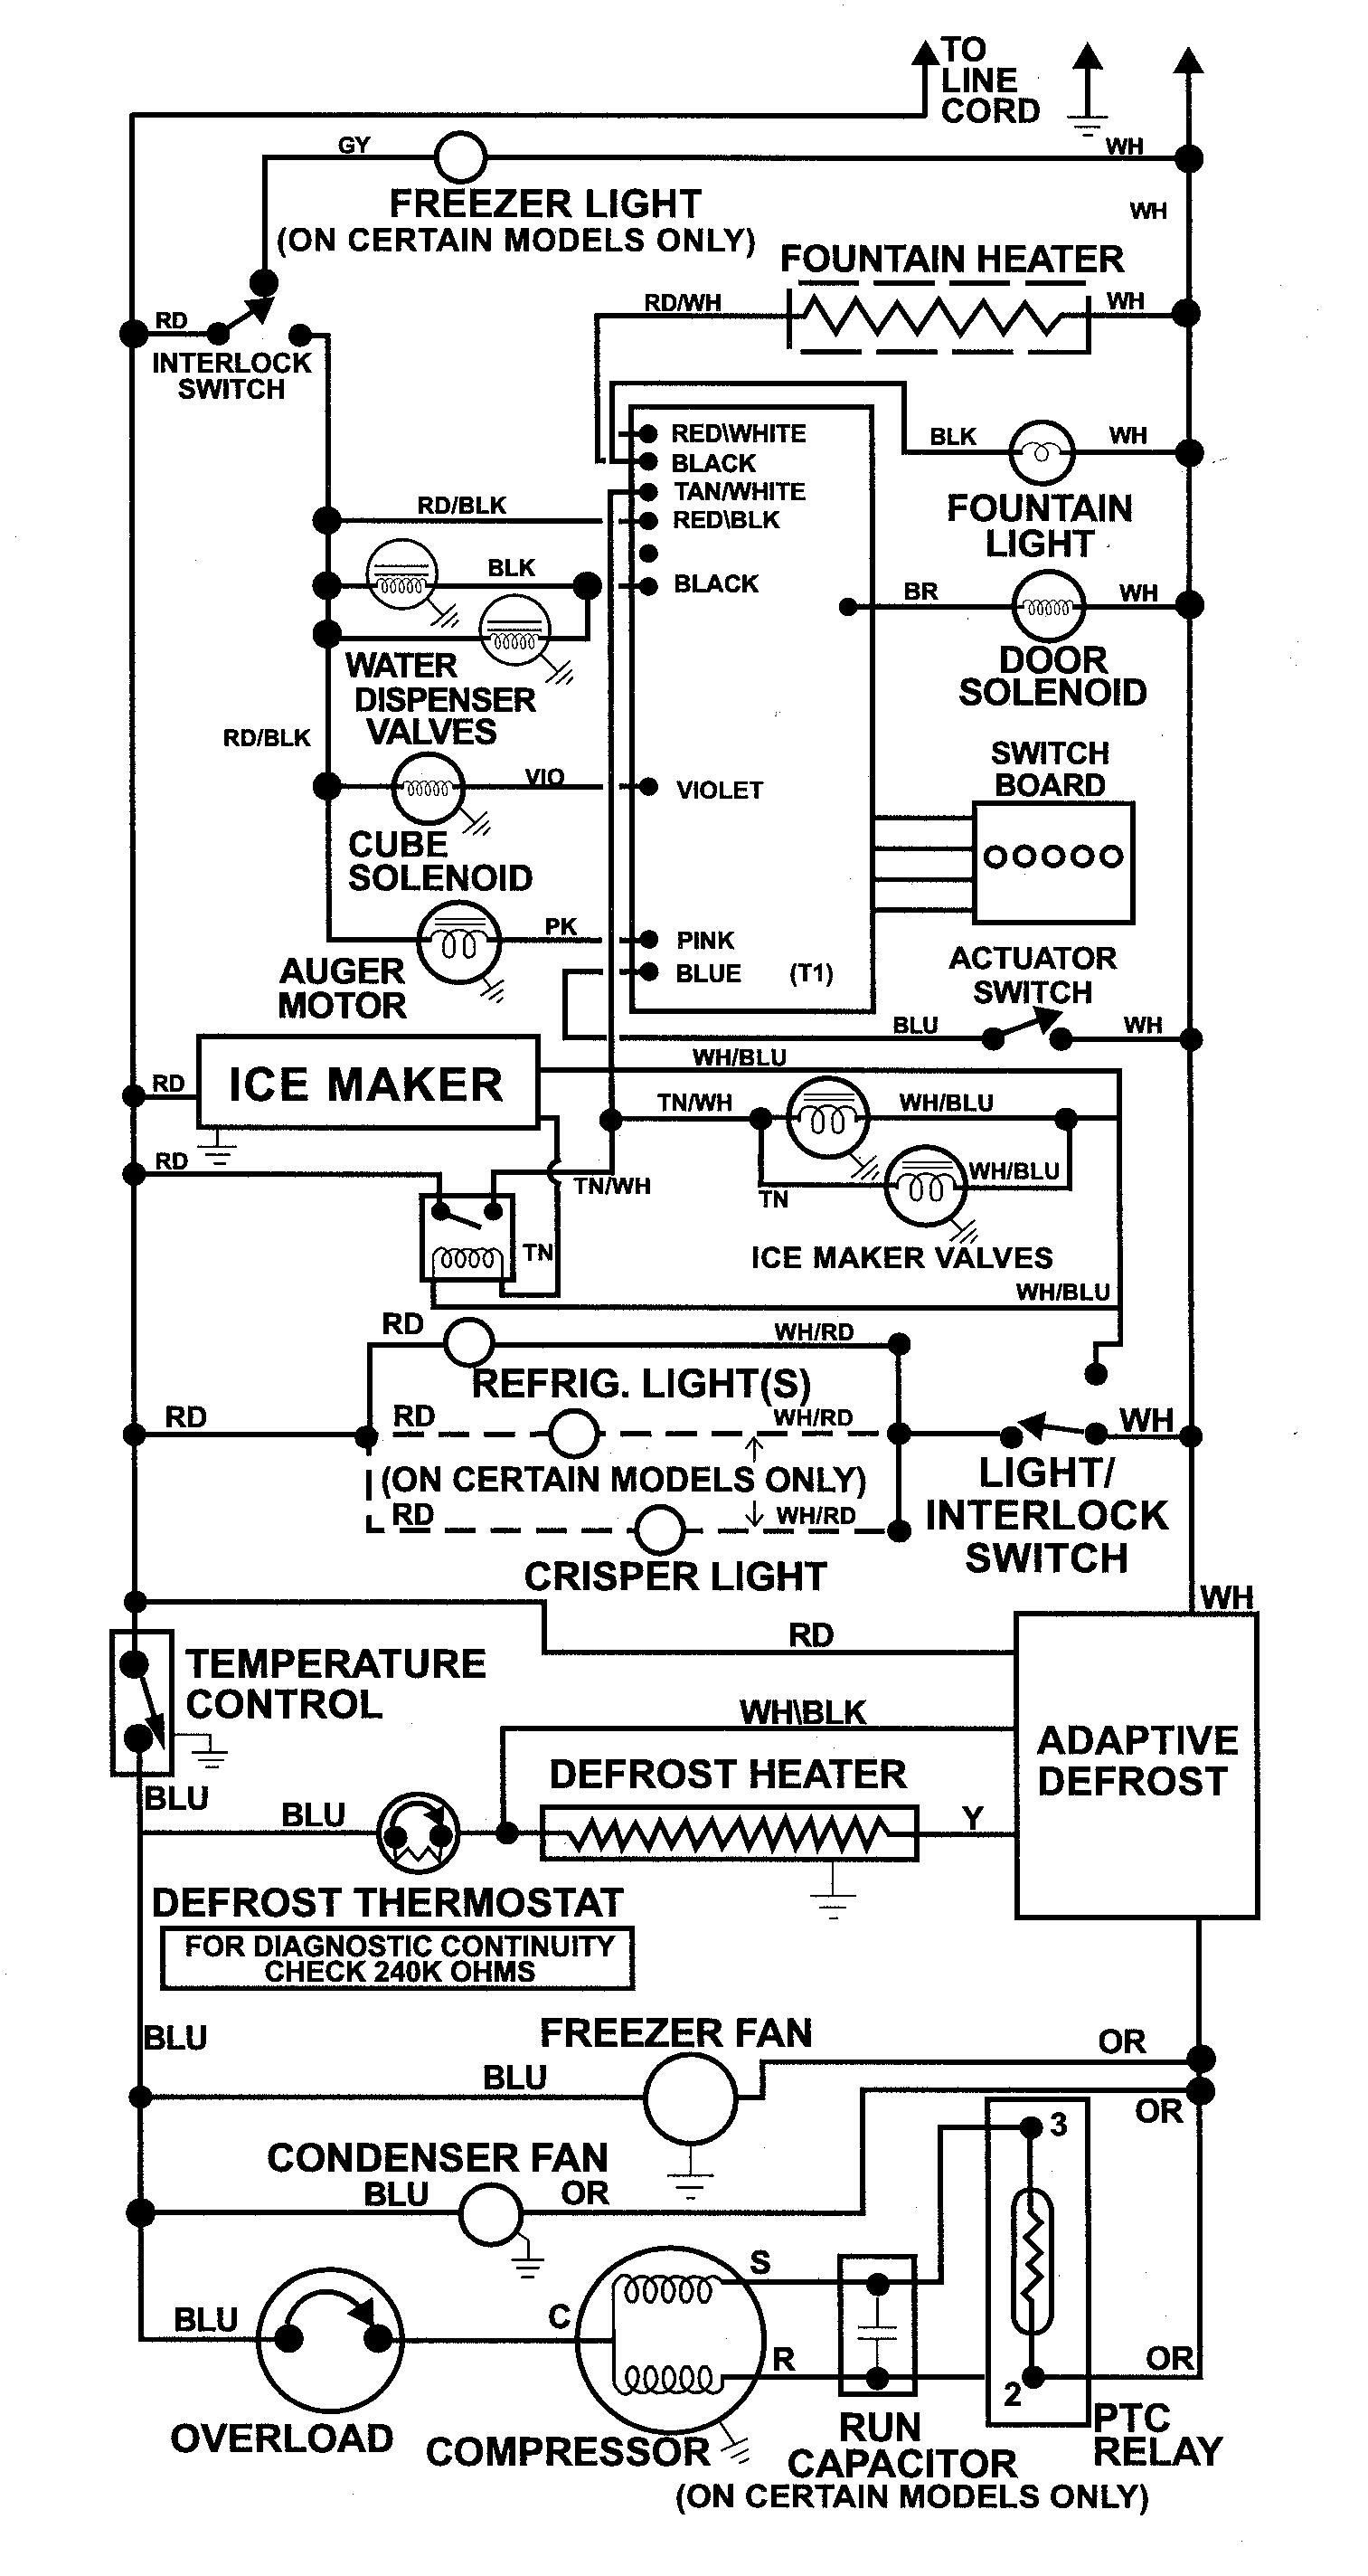 hight resolution of wiring diagram for maytag refrigerator wiring diagram paper wiring diagram maytag fridge wiring diagram maytag fridge